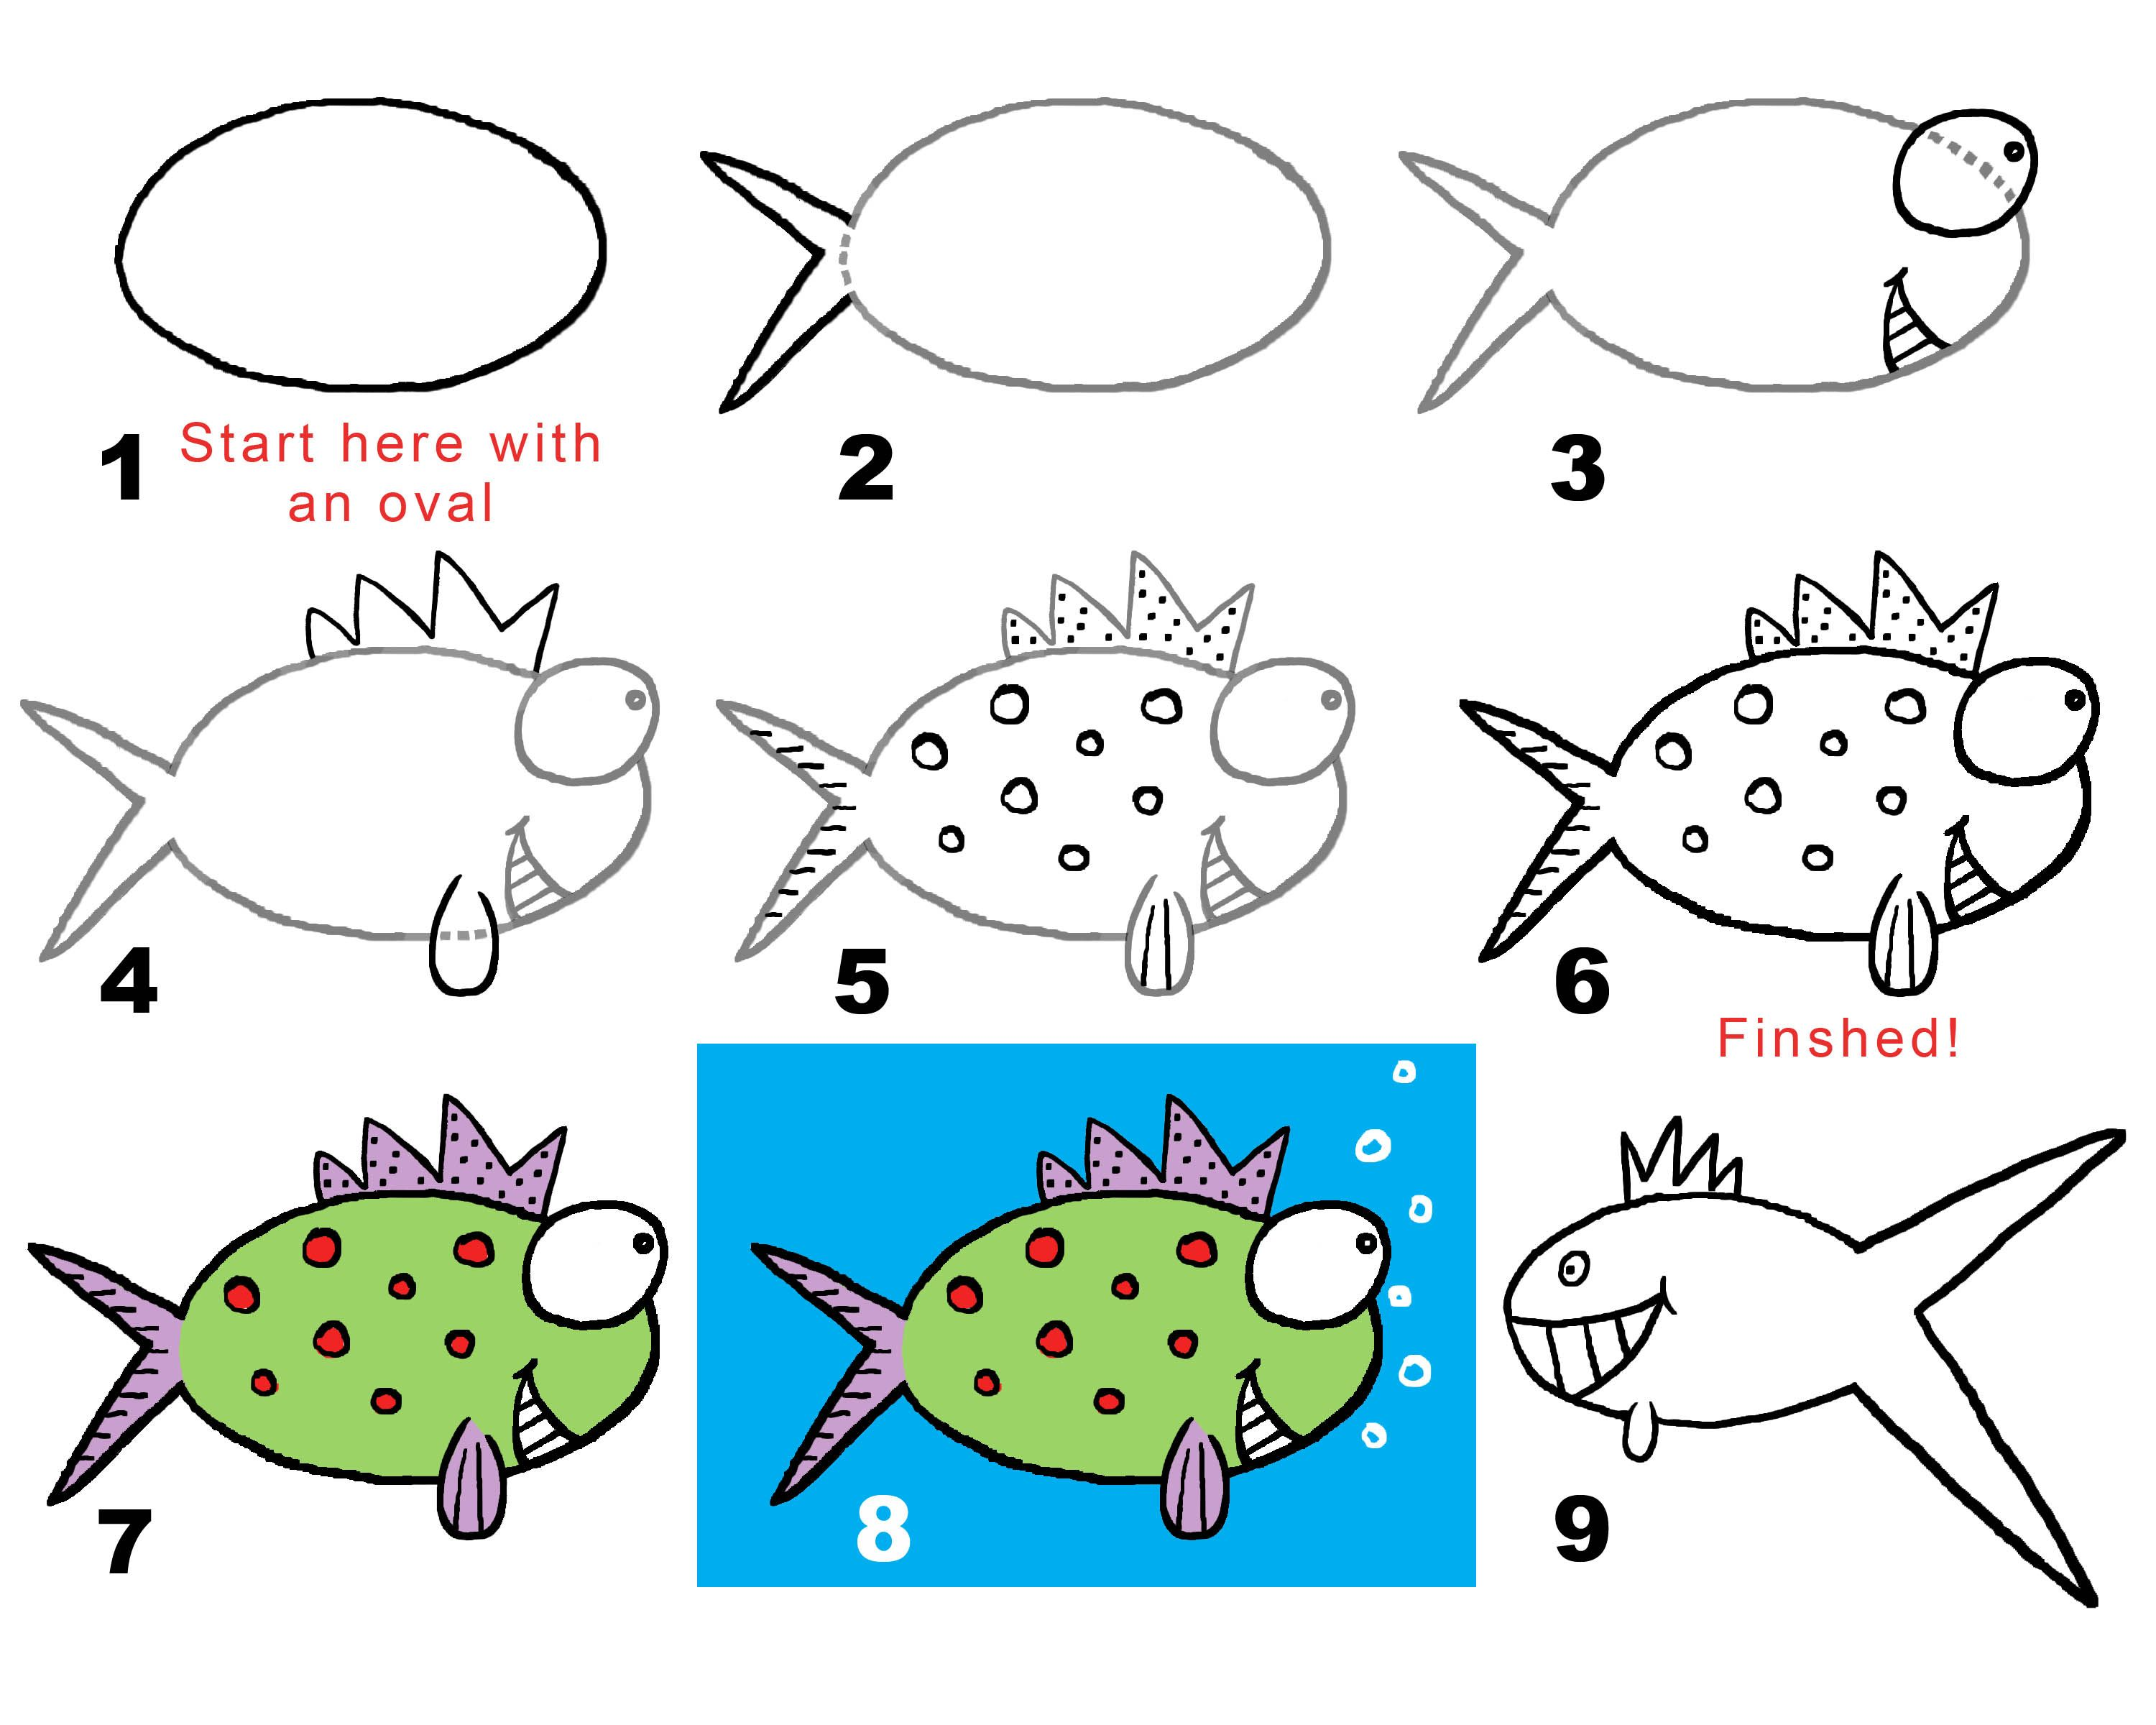 Fishy Fishy Draw Your Own Conclusions Drawn Fish Doodle Drawings Fish Drawings